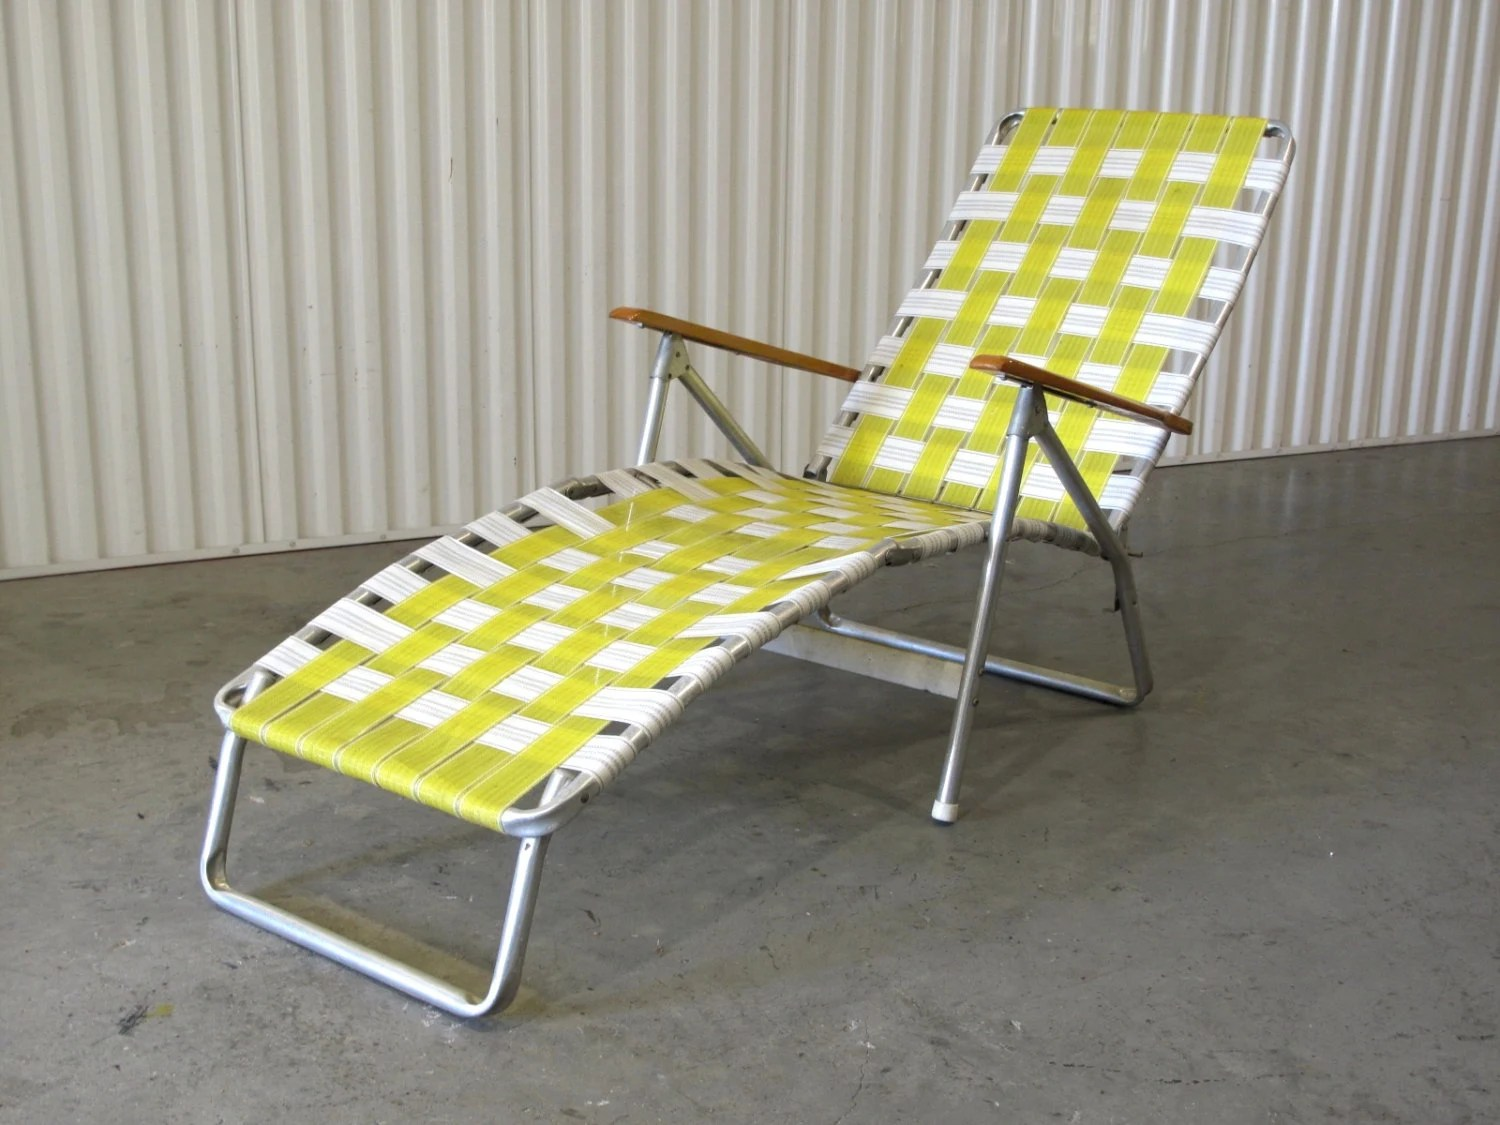 1960s Webbed Lawn Chair Folding Beach Chair Lounge by